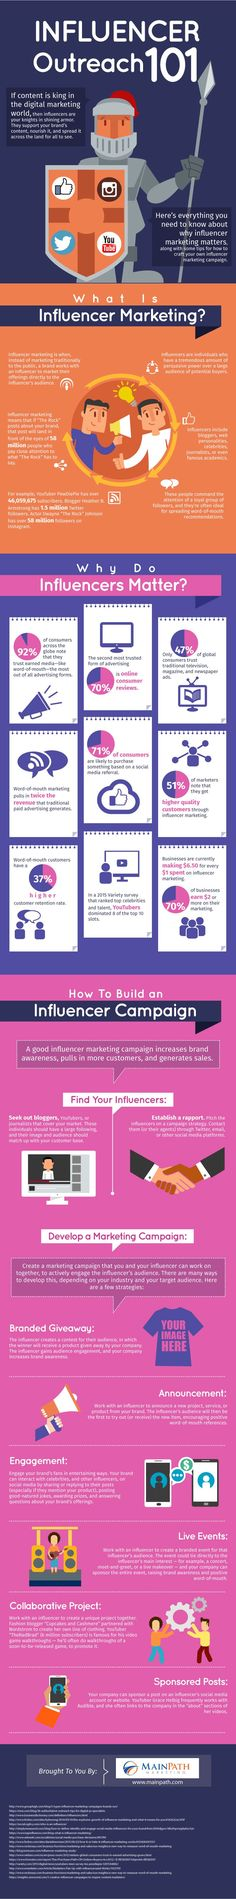 Influencer Outreach 101 #Infographic  Perfect guide to create a social influencing marketing strategy